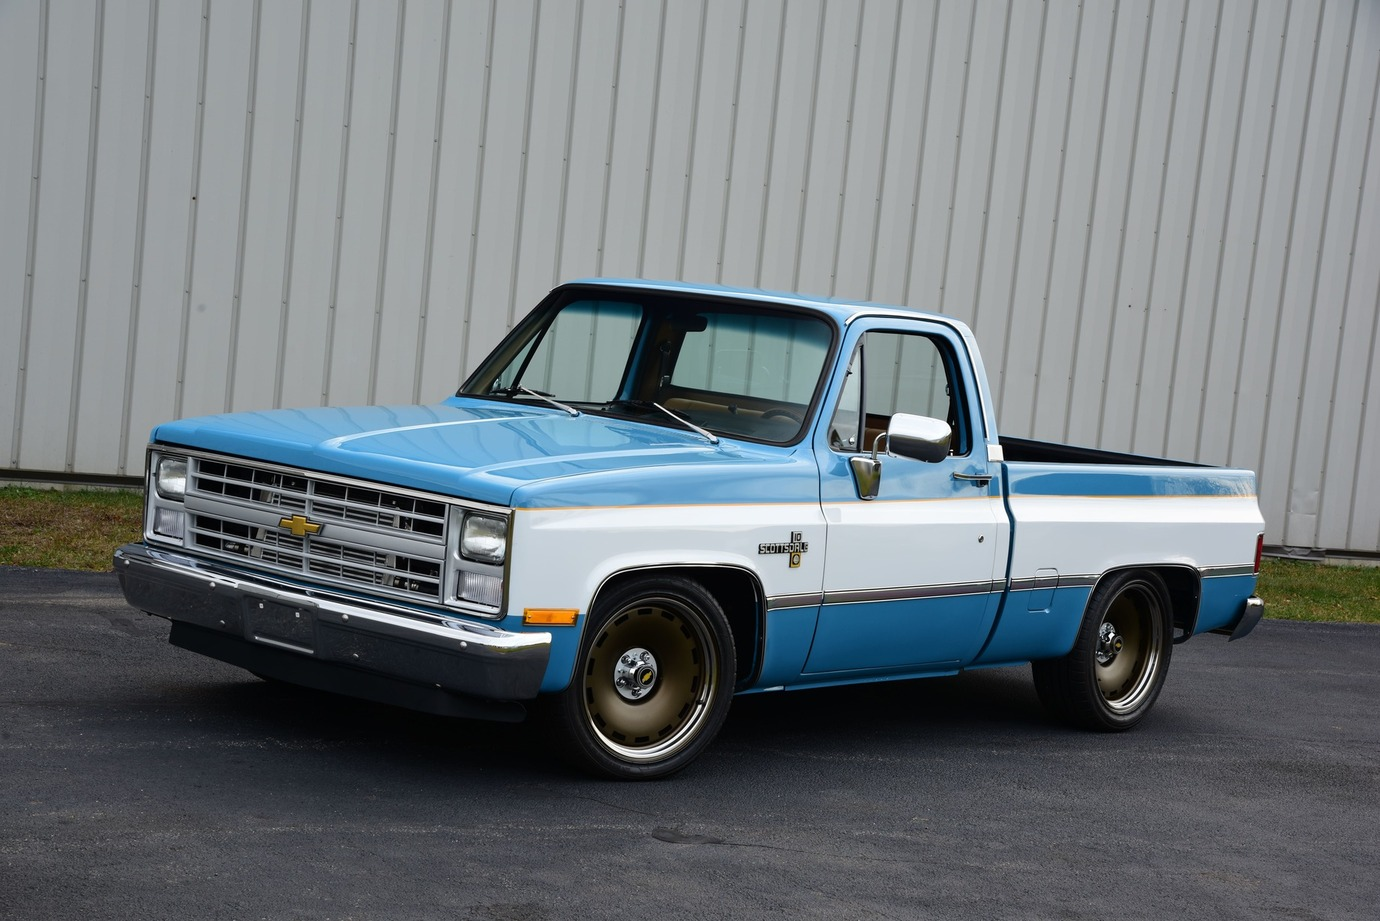 004-1983-chevrolet-c10-scottsdale-pickup-cerce